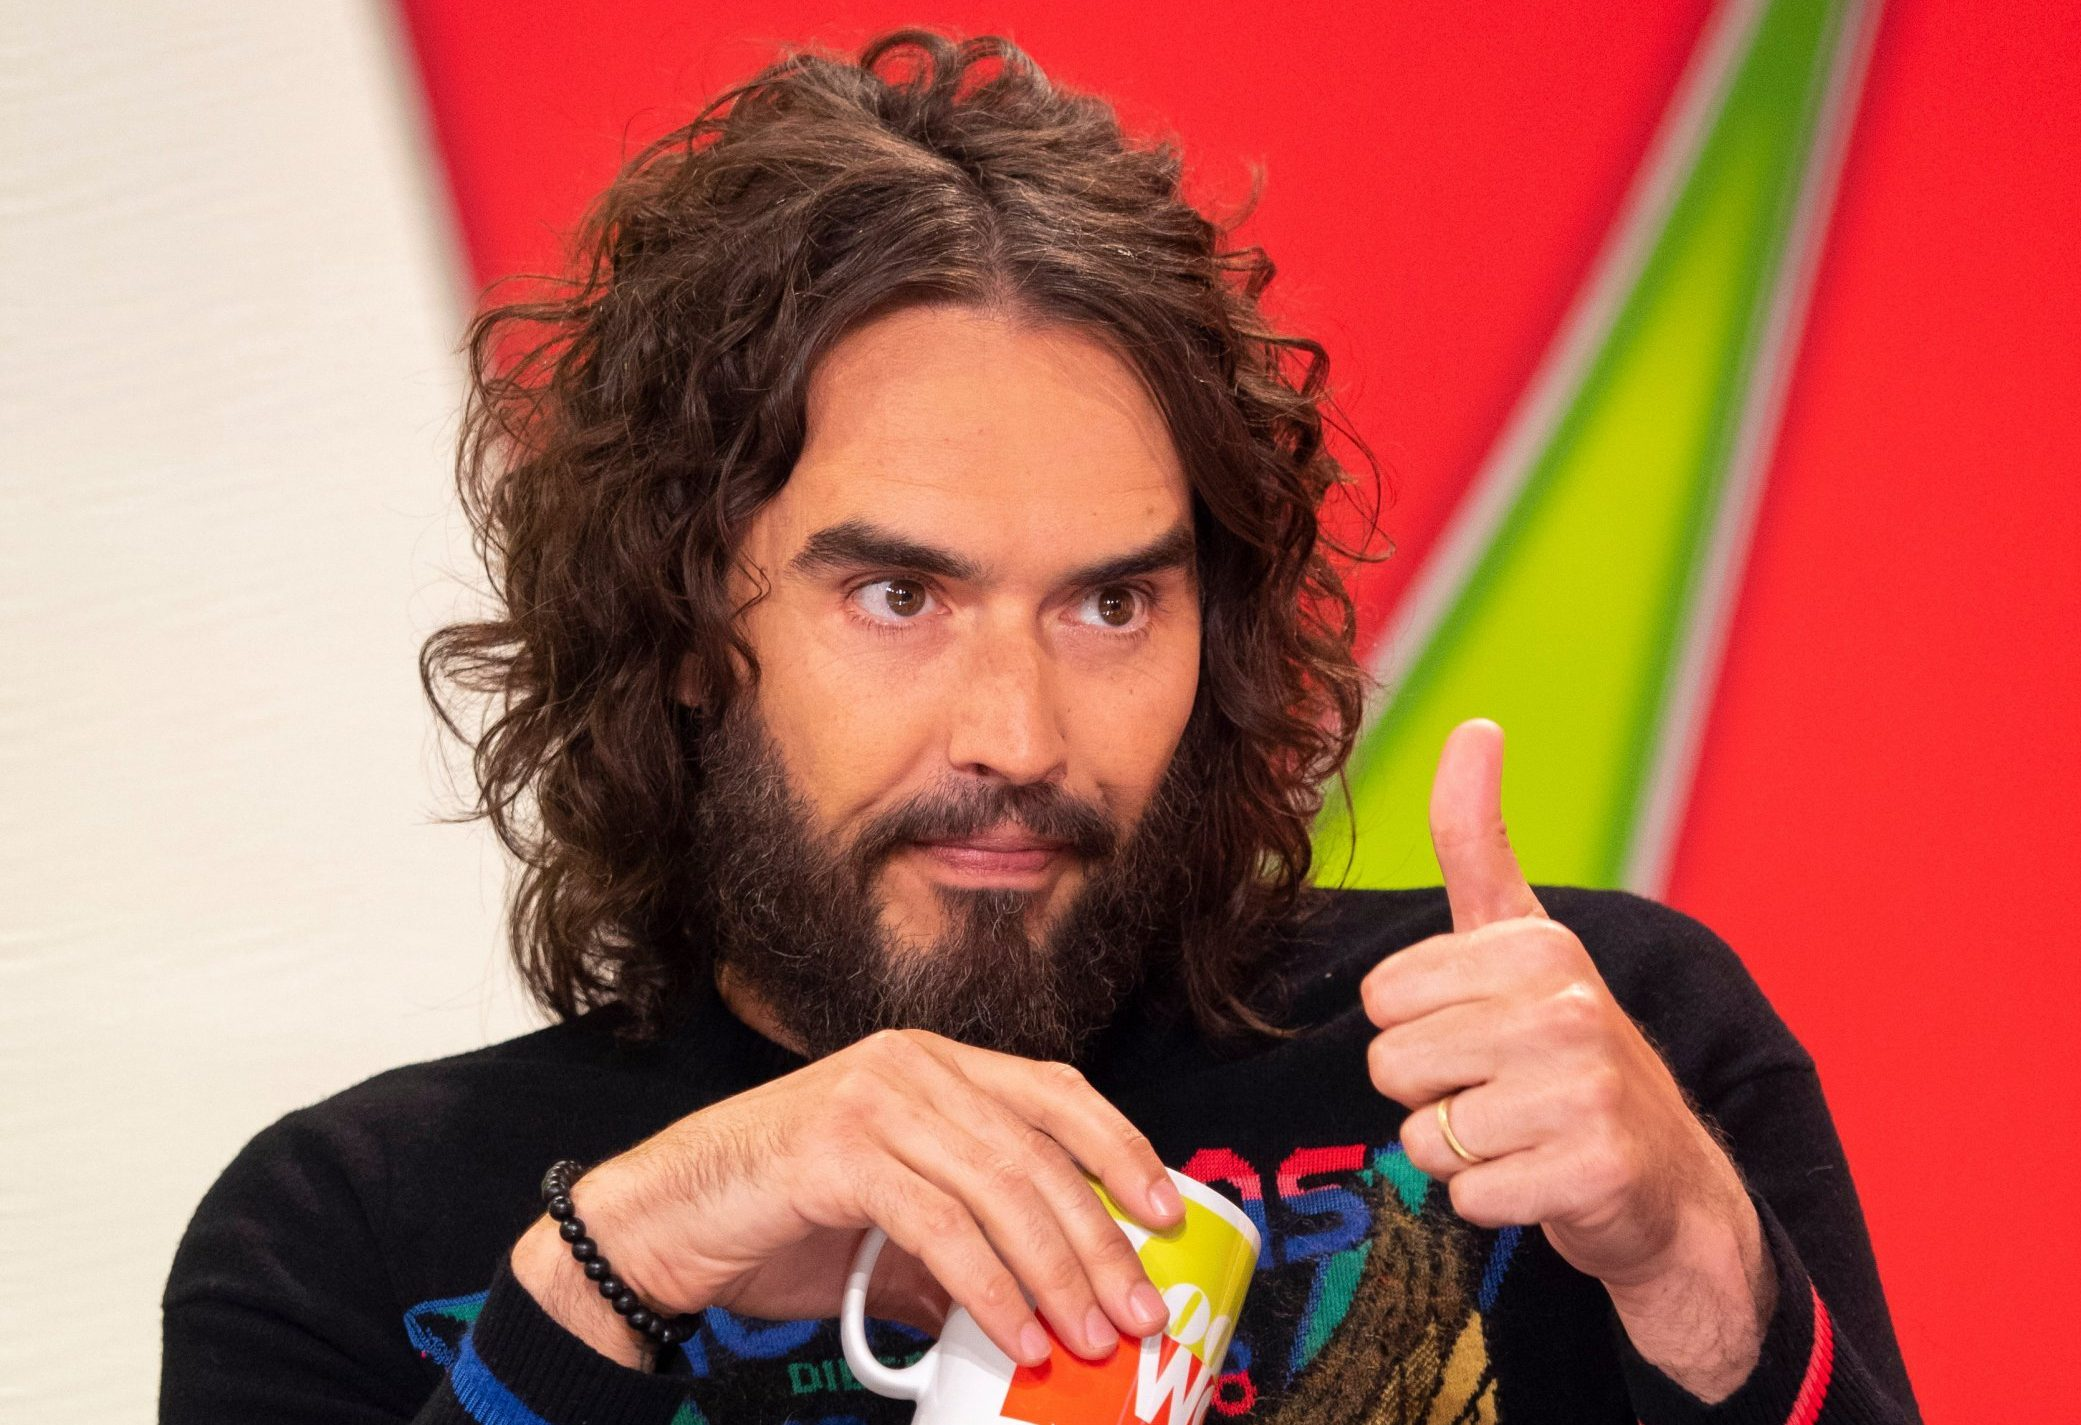 EDITORIAL USE ONLY. NO MERCHANDISING IN US EXCLUSIVE RATES APPLY Mandatory Credit: Photo by Ken McKay/ITV/REX/Shutterstock (9675427az) Russell Brand 'Loose Women' TV show, London, UK - 16 May 2018